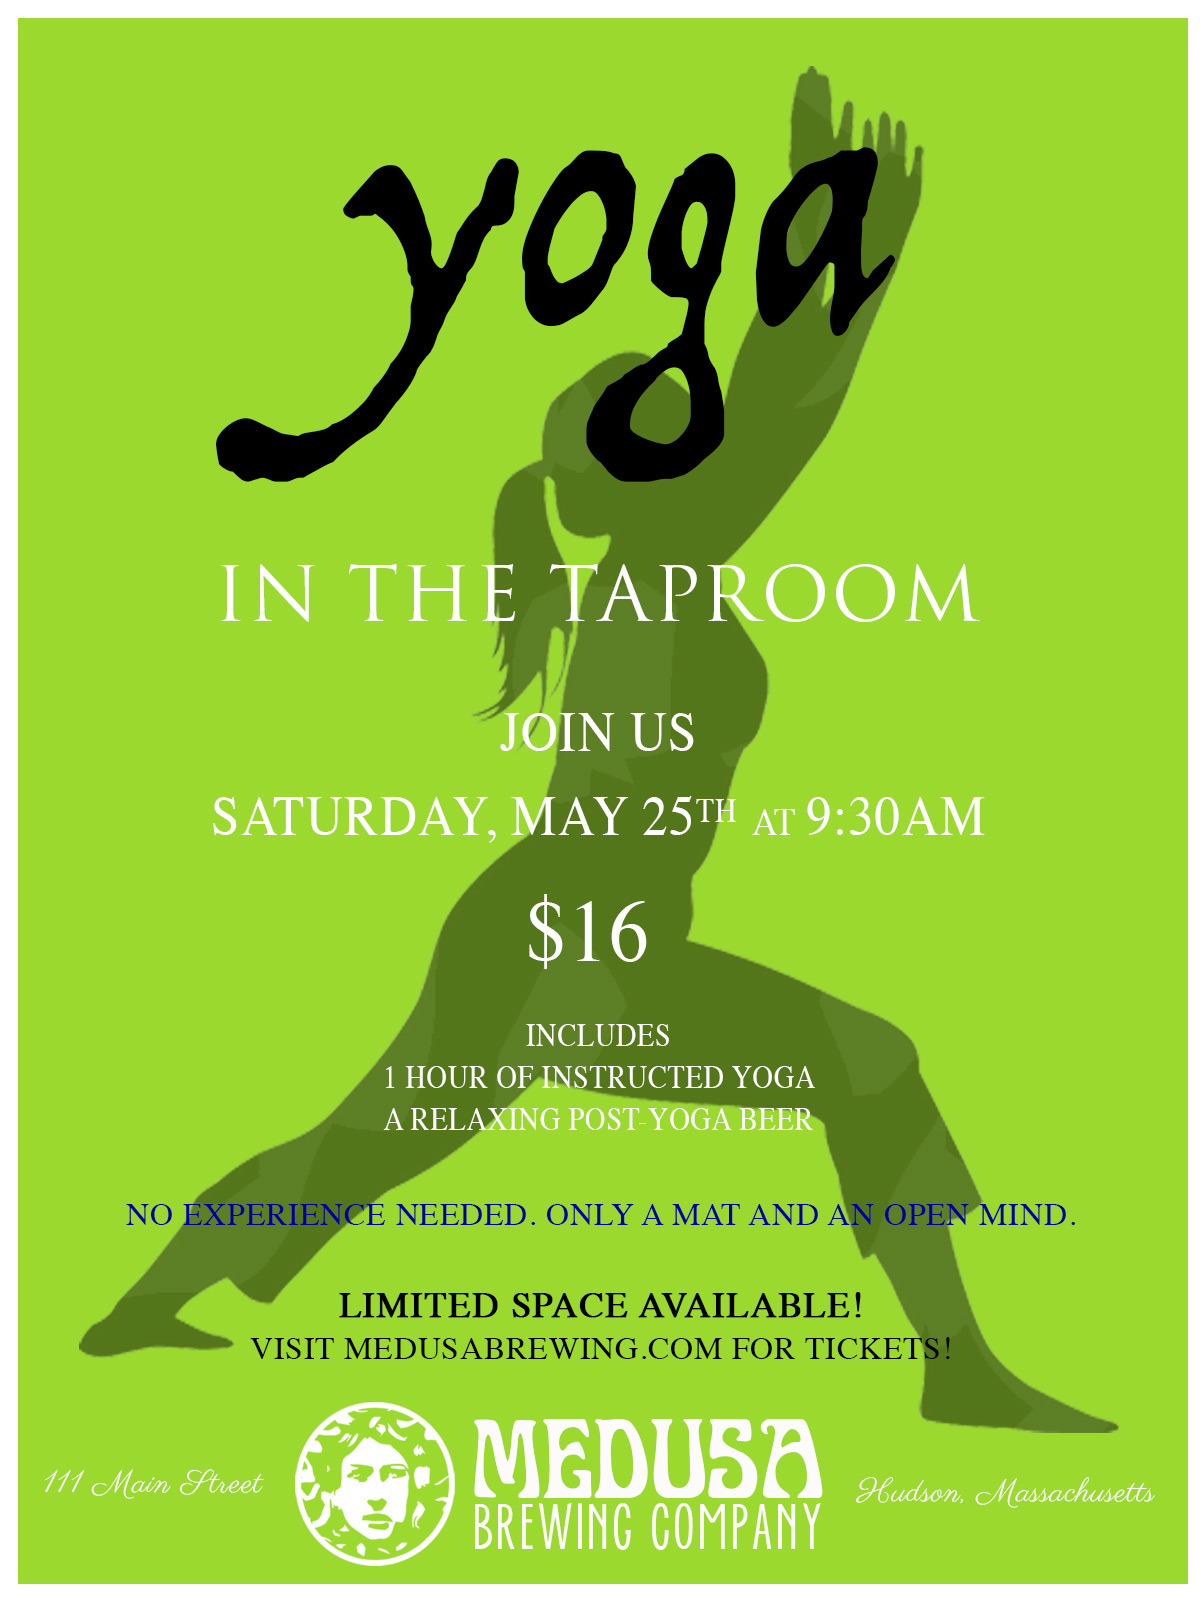 Yoga-in-the-Taproom-5-25.jpg